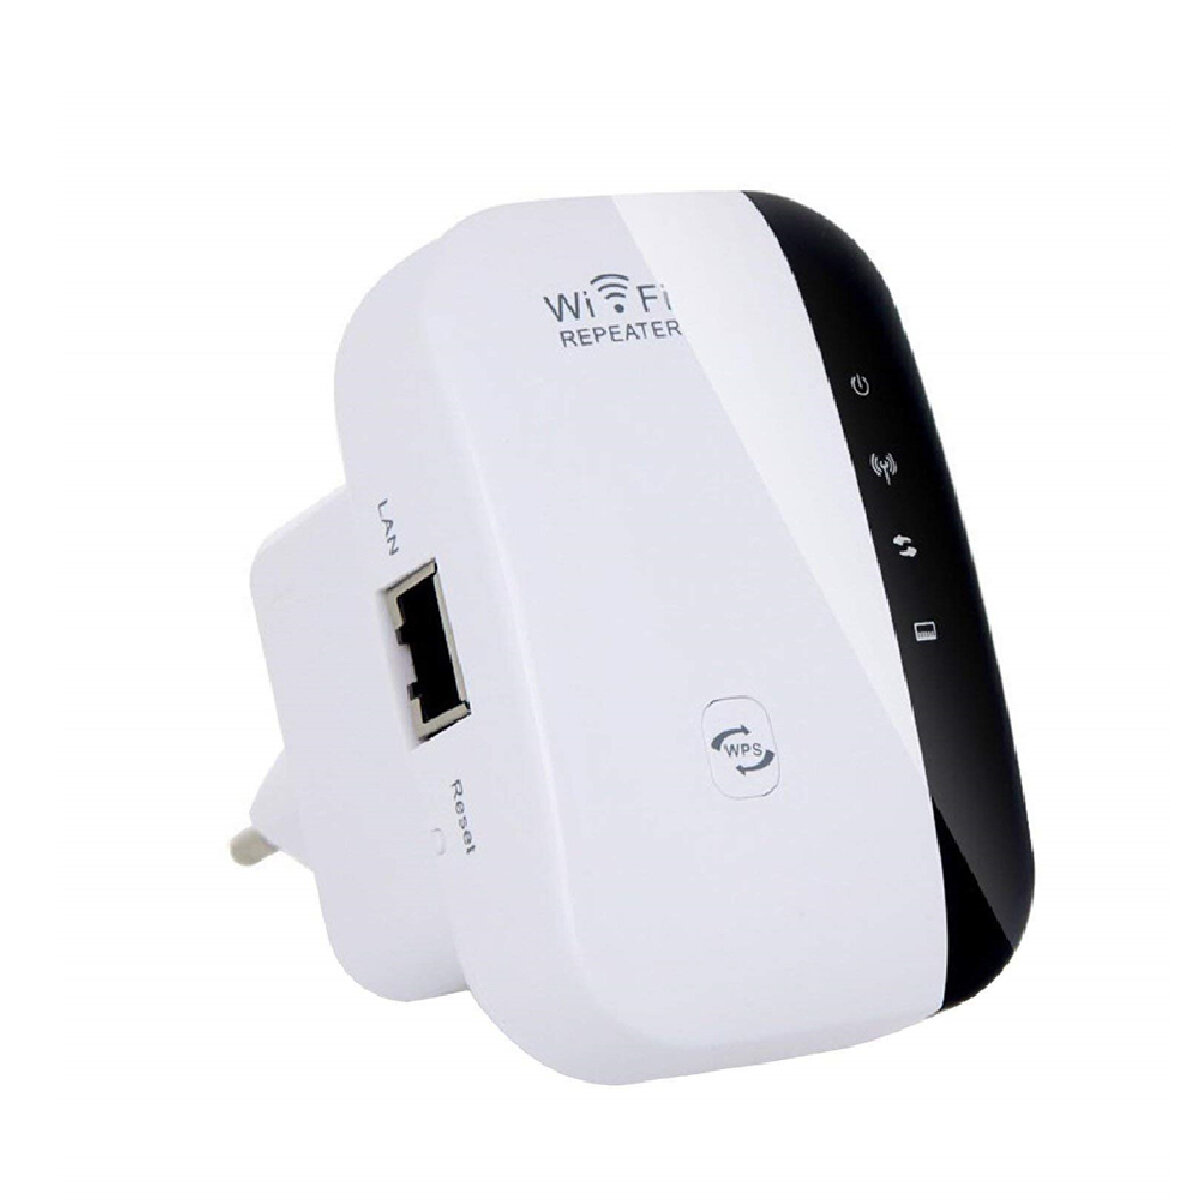 300Mbps Wireless-N Wifi Repeater 2.4G AP Router Signal Booster Extender Amplifier WiFi Extender Repeater US/EU/UK/AU Plug